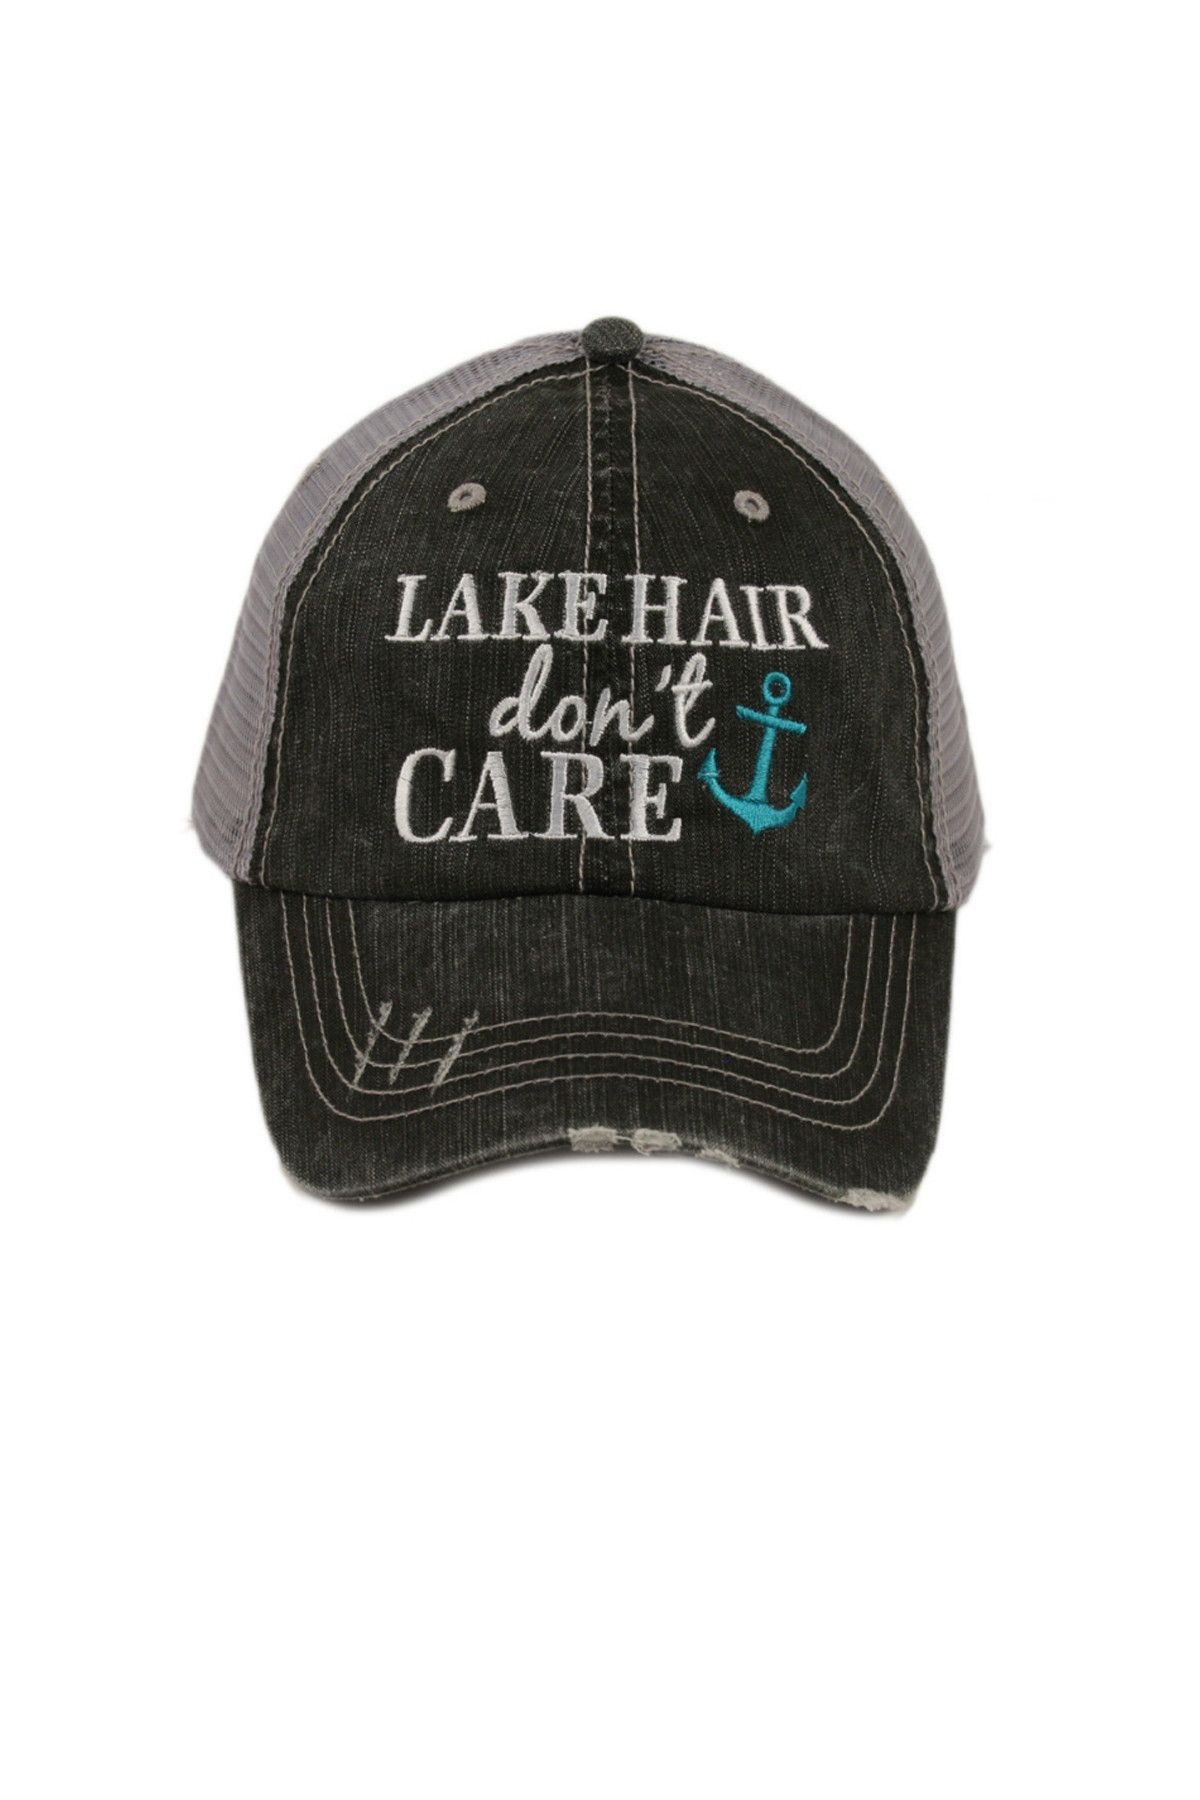 8d69f756d1f How fun for lounging days at the beach or lake! We love our distressed  denim trucker hat in vintage wash and and adjustable tab with mesh back.